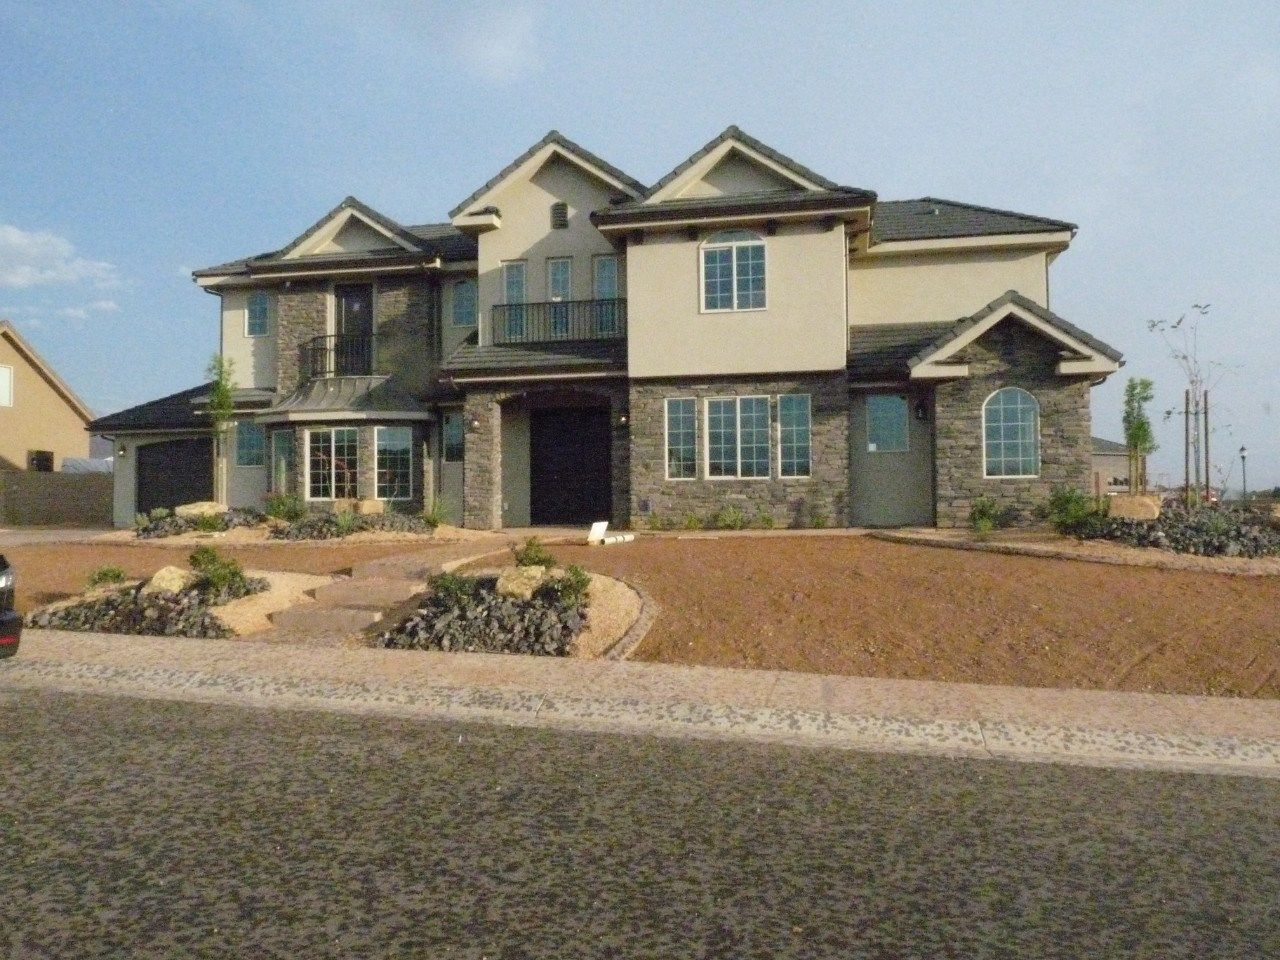 s s homes gentry lane plan 3744 1293490 saint george ut new home for sale homegain